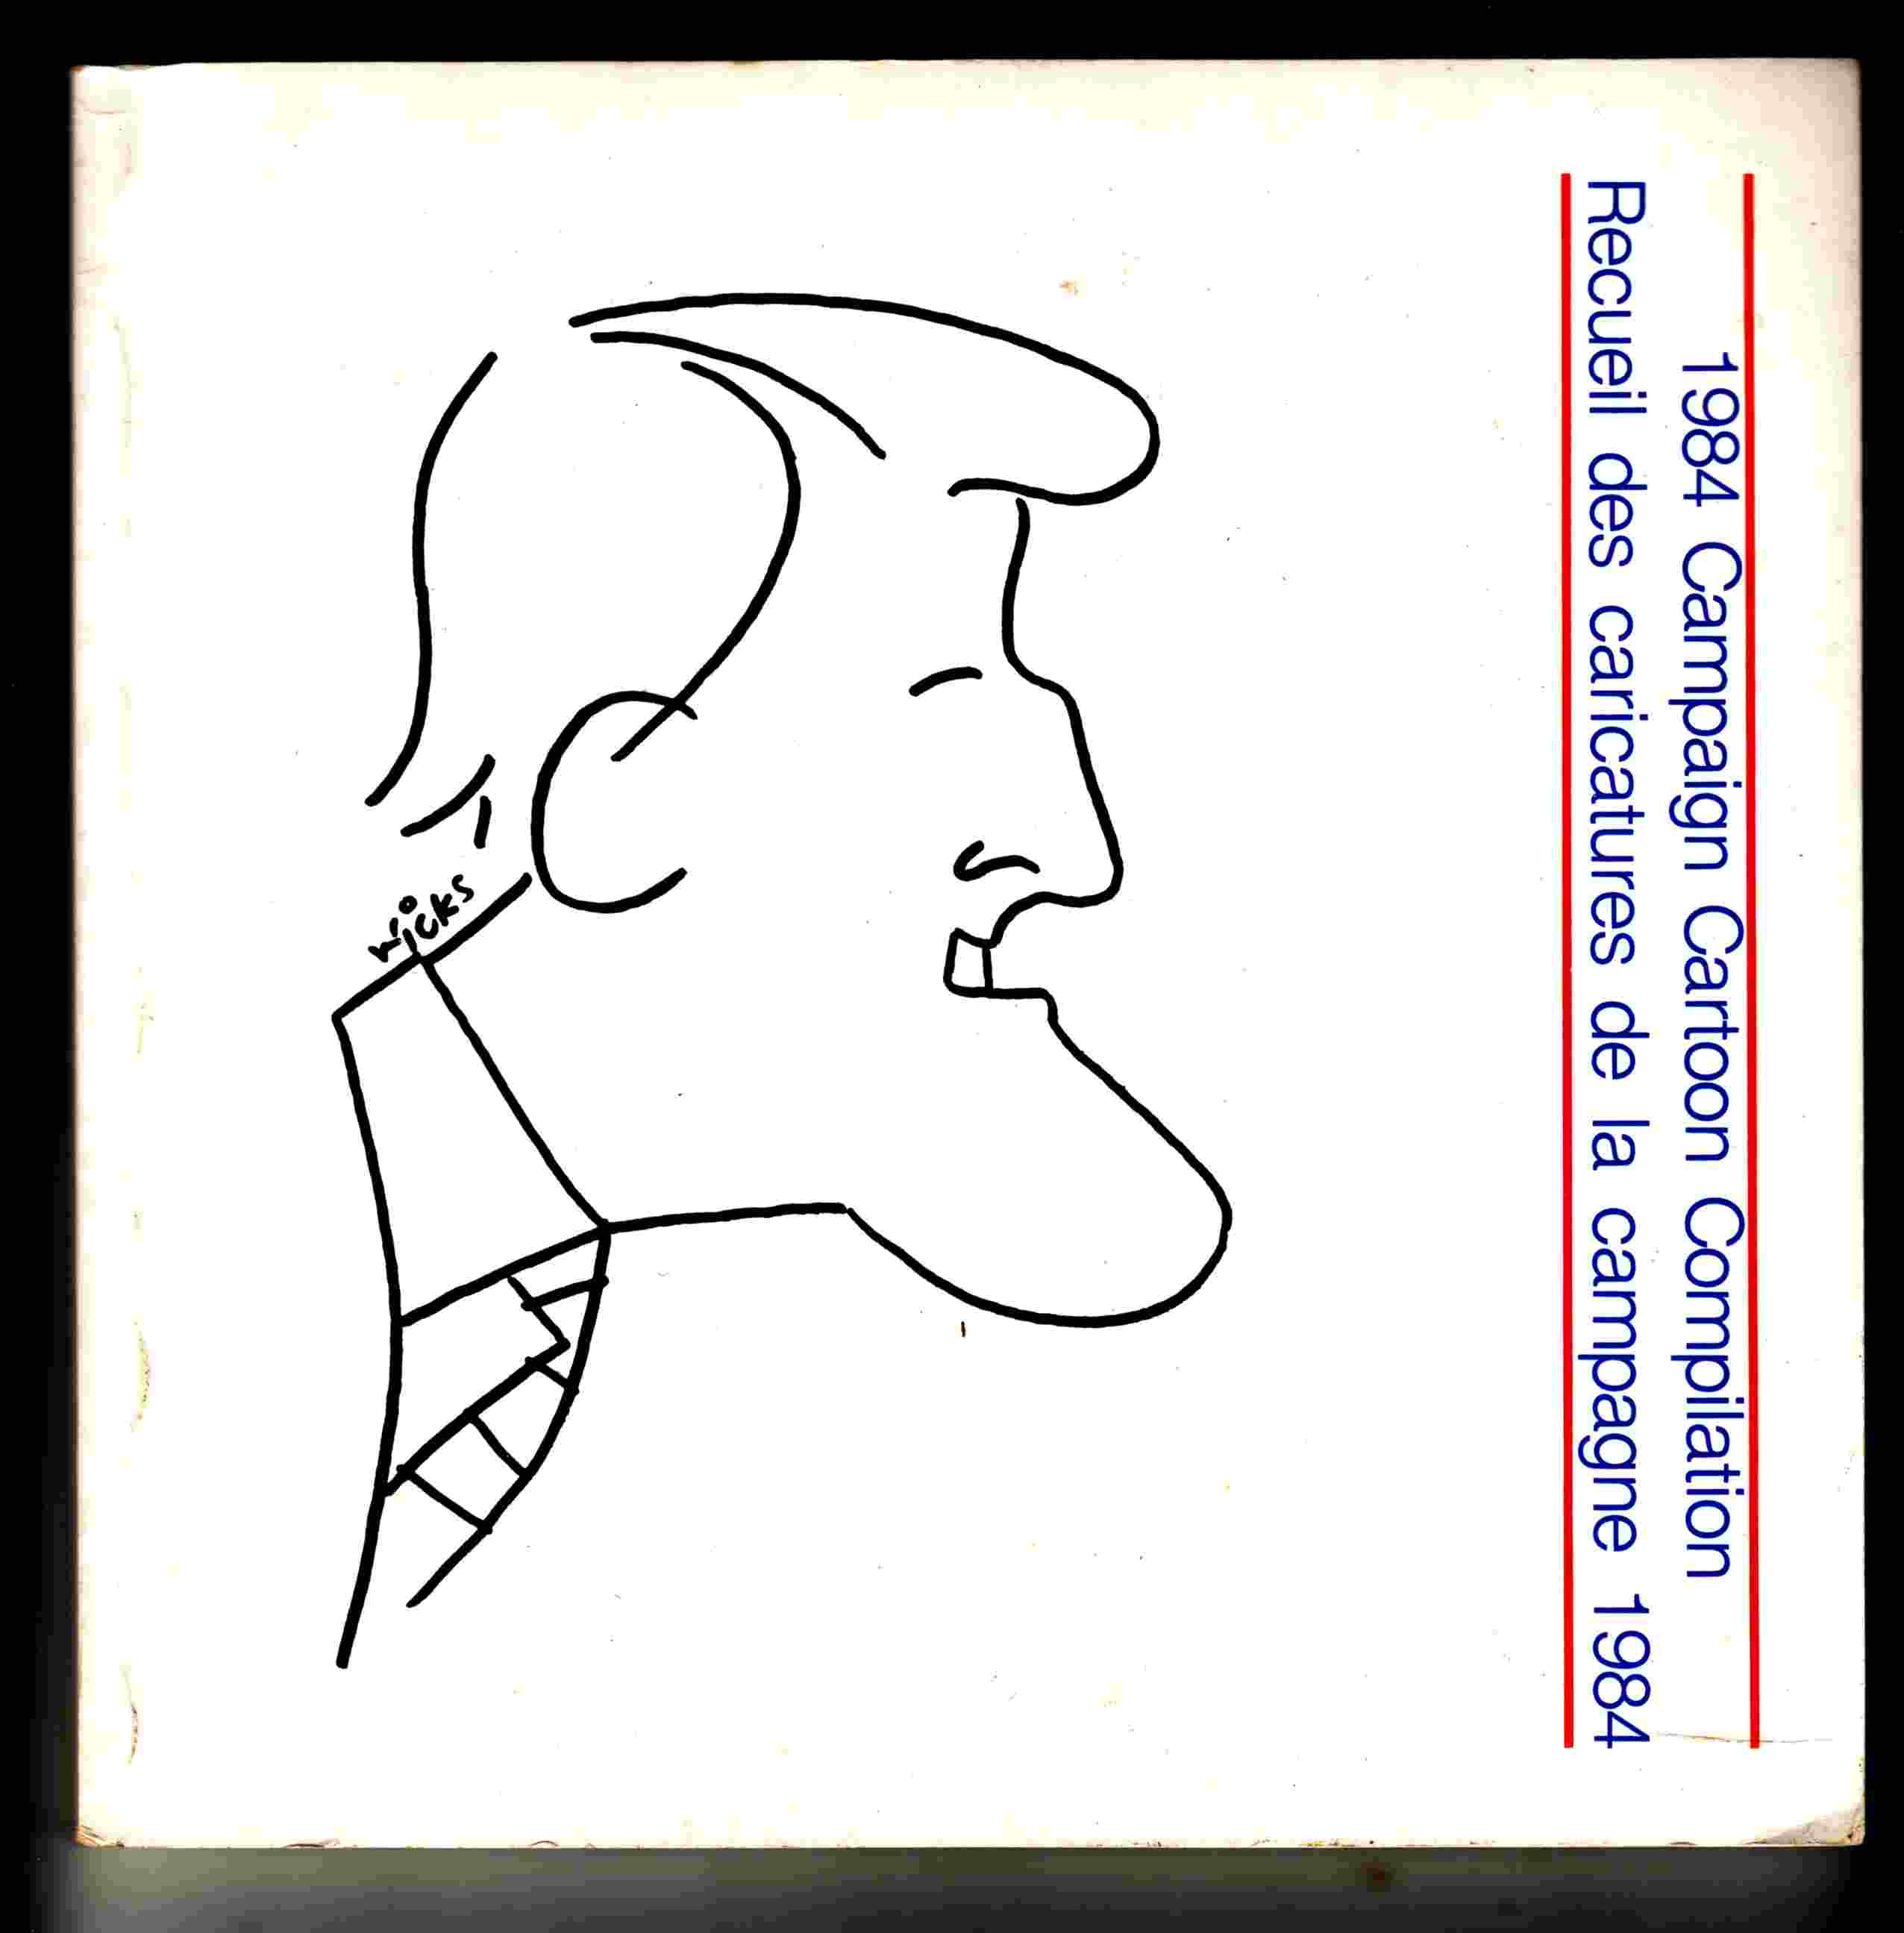 Image for 1984 Campaign Cartoon Compilation / Recueil Des Caricatures De La Campagne 1984